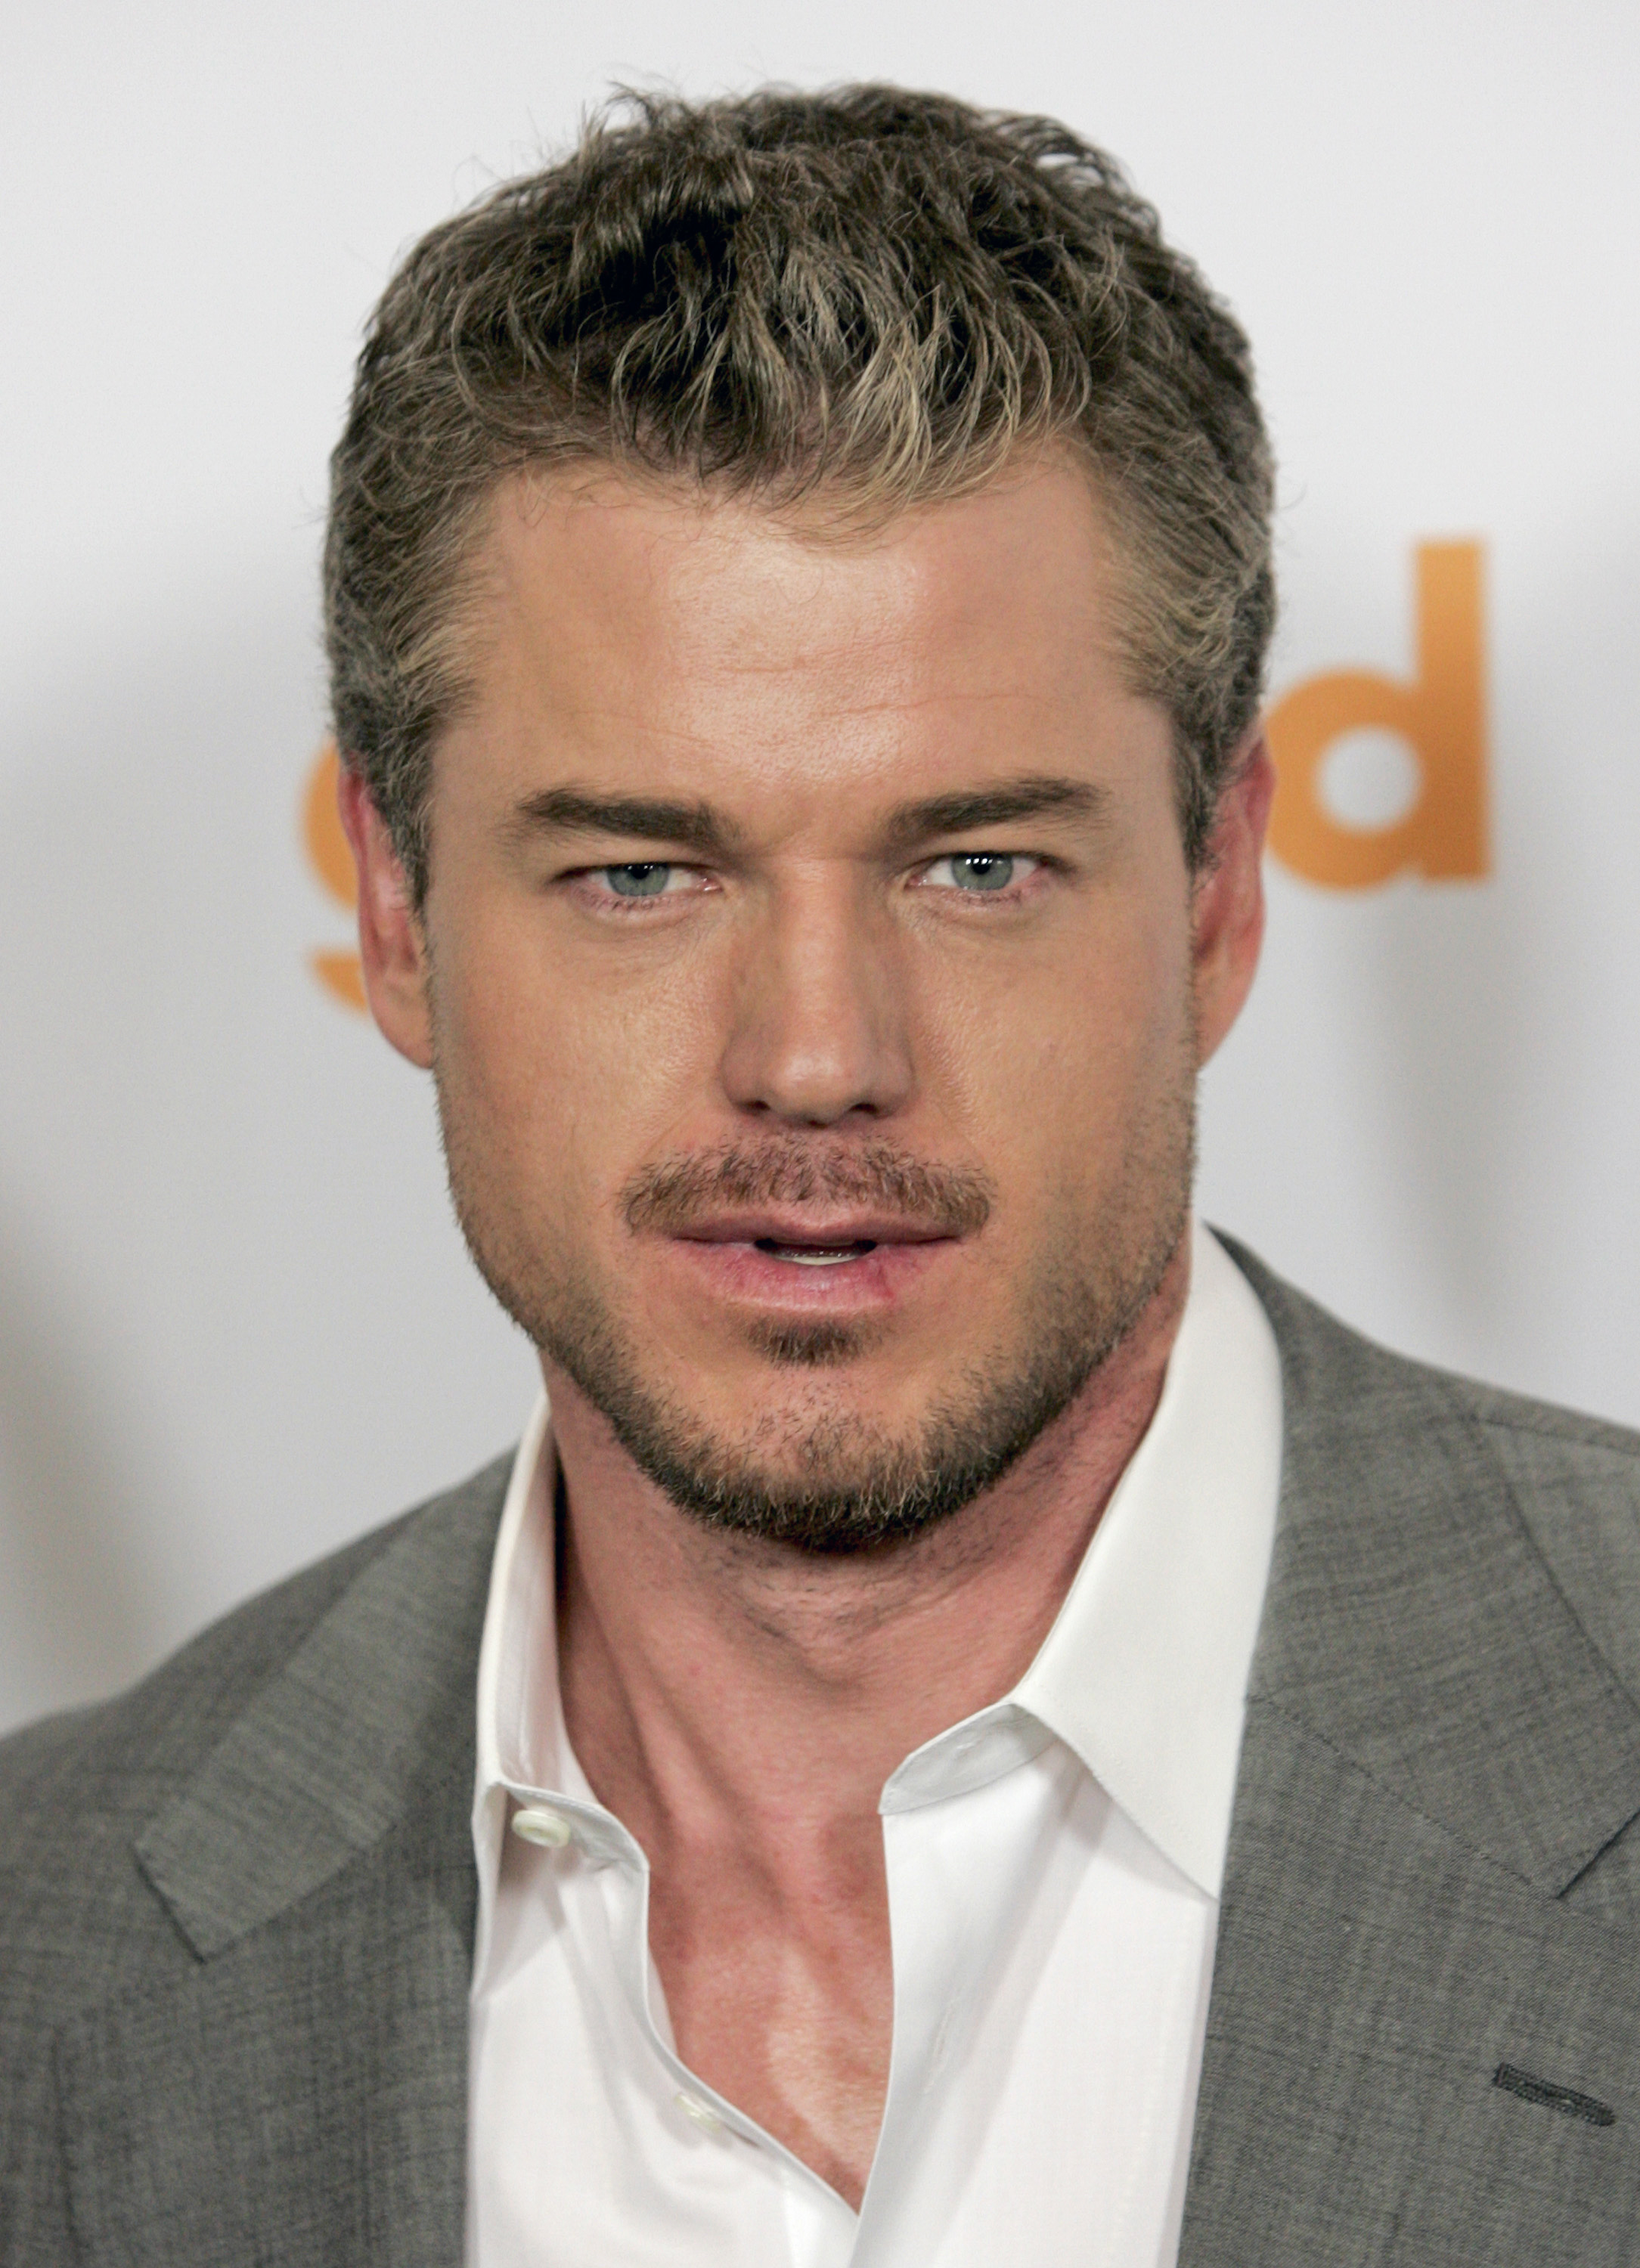 Eric Dane earned a  million dollar salary, leaving the net worth at 7 million in 2017